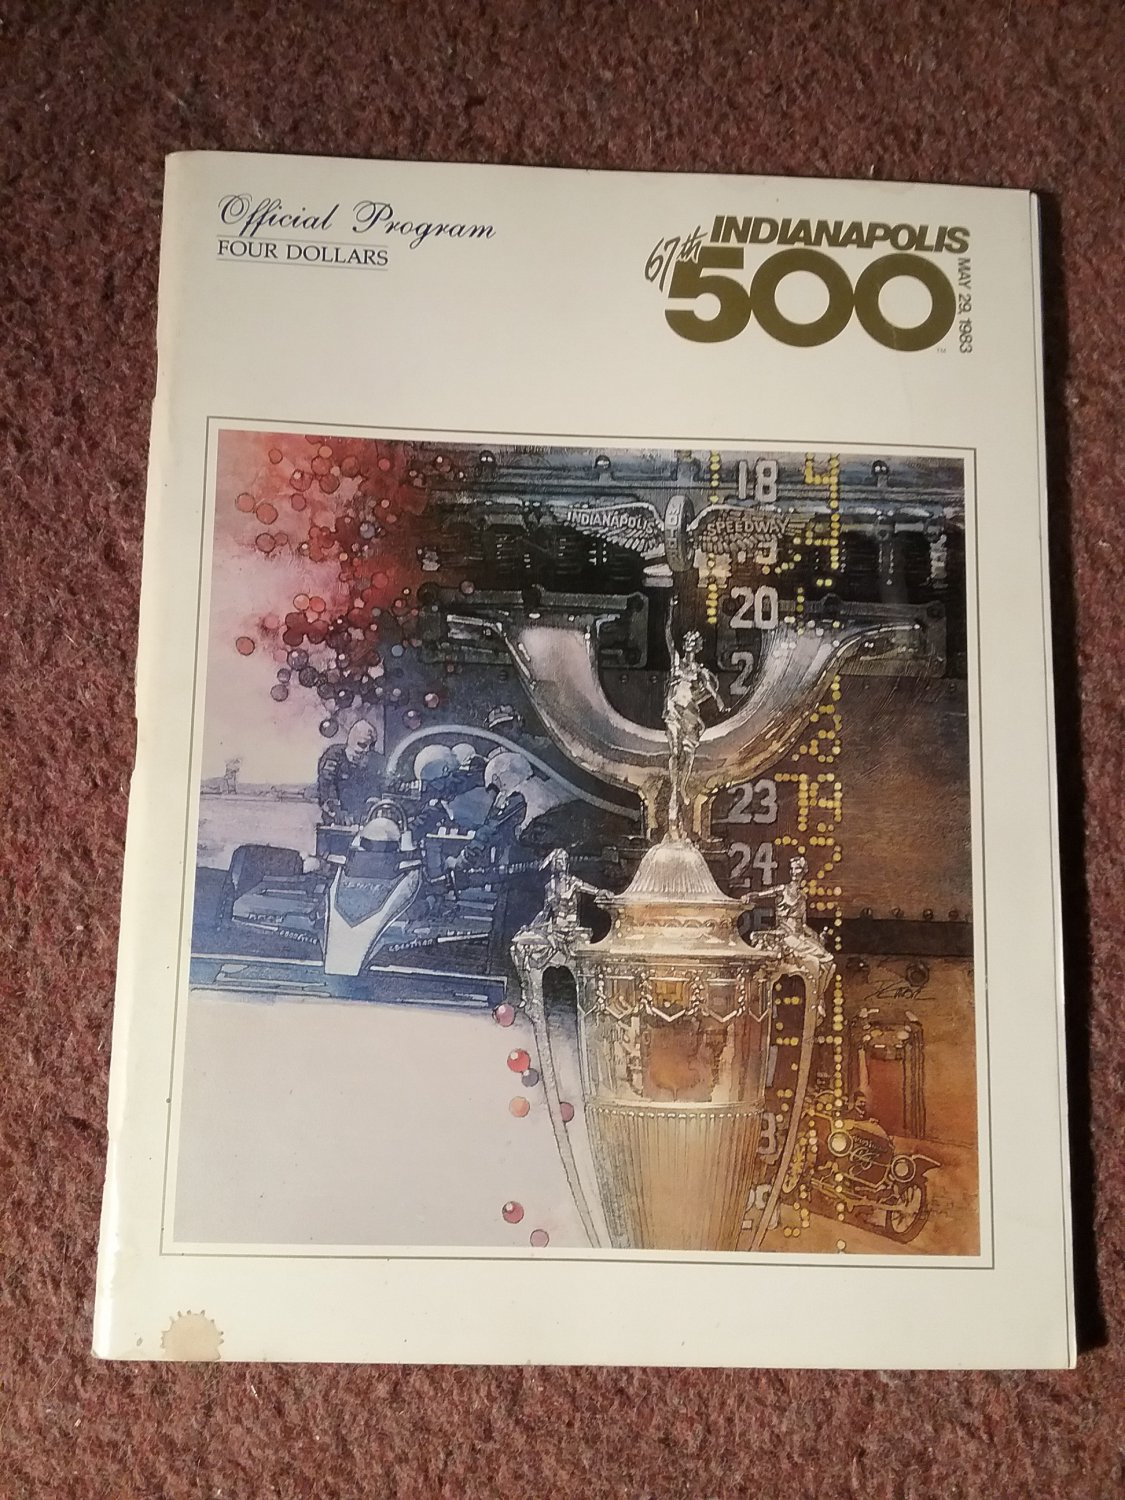 67th Indianapolis 500 1983 Official Program 07071670